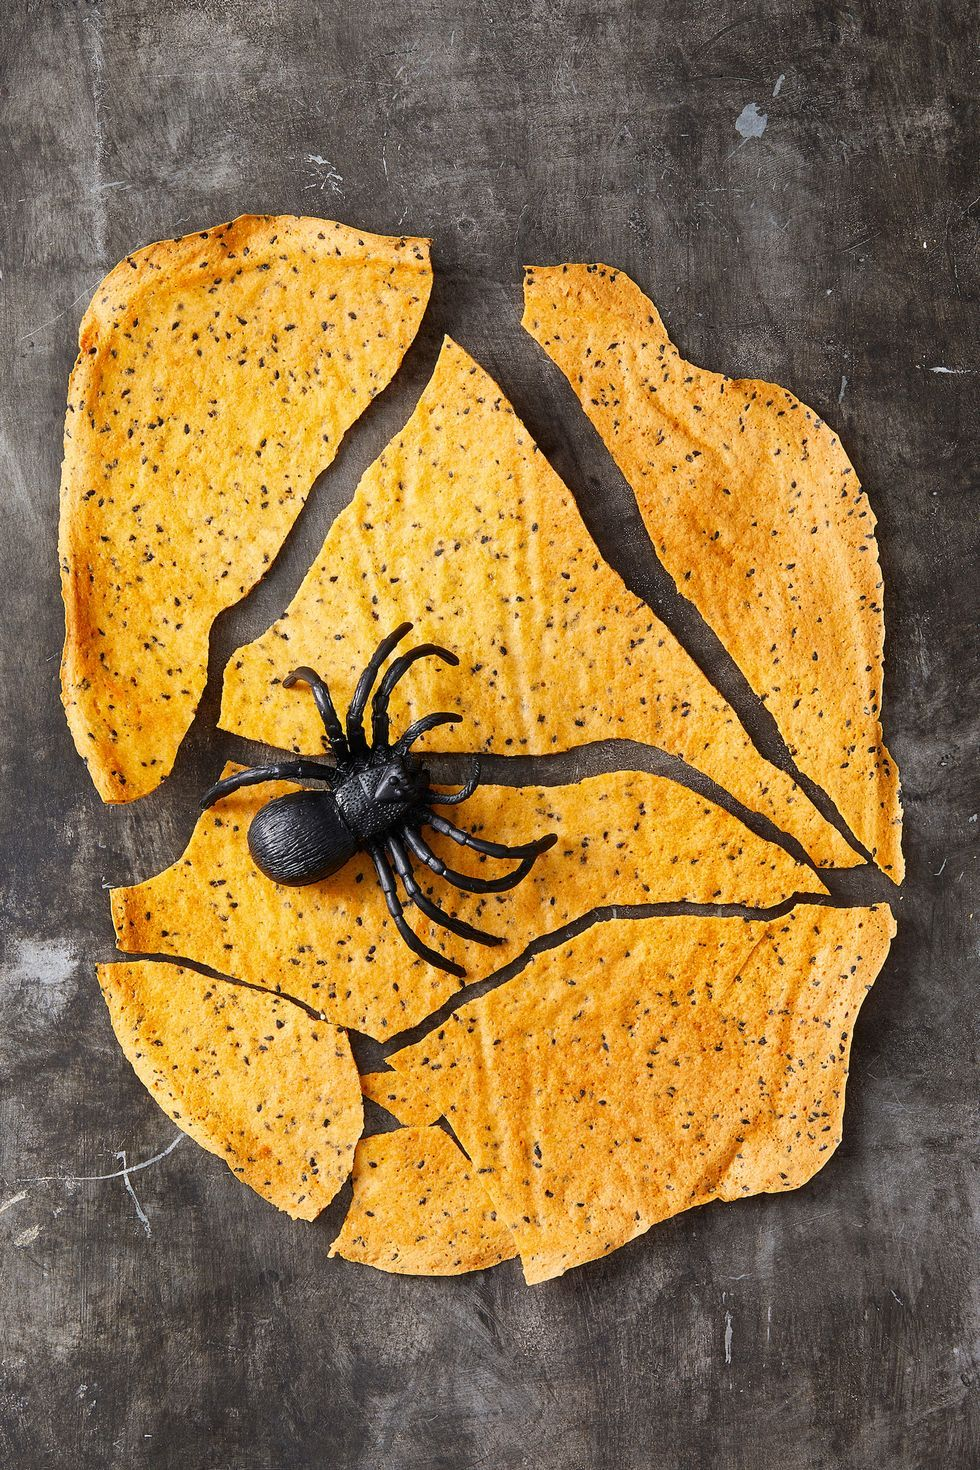 50 Creative Halloween Snacks That Are Equally Creepy and Cute